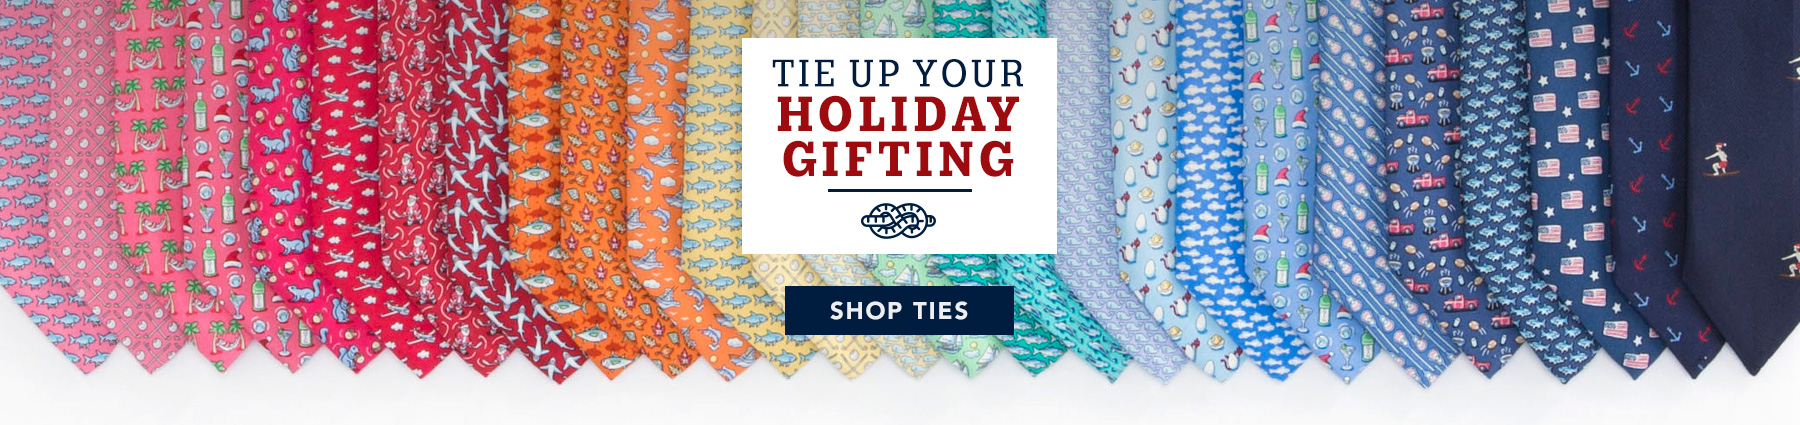 Tie up your holiday gifting. Shop our Gift Guide.